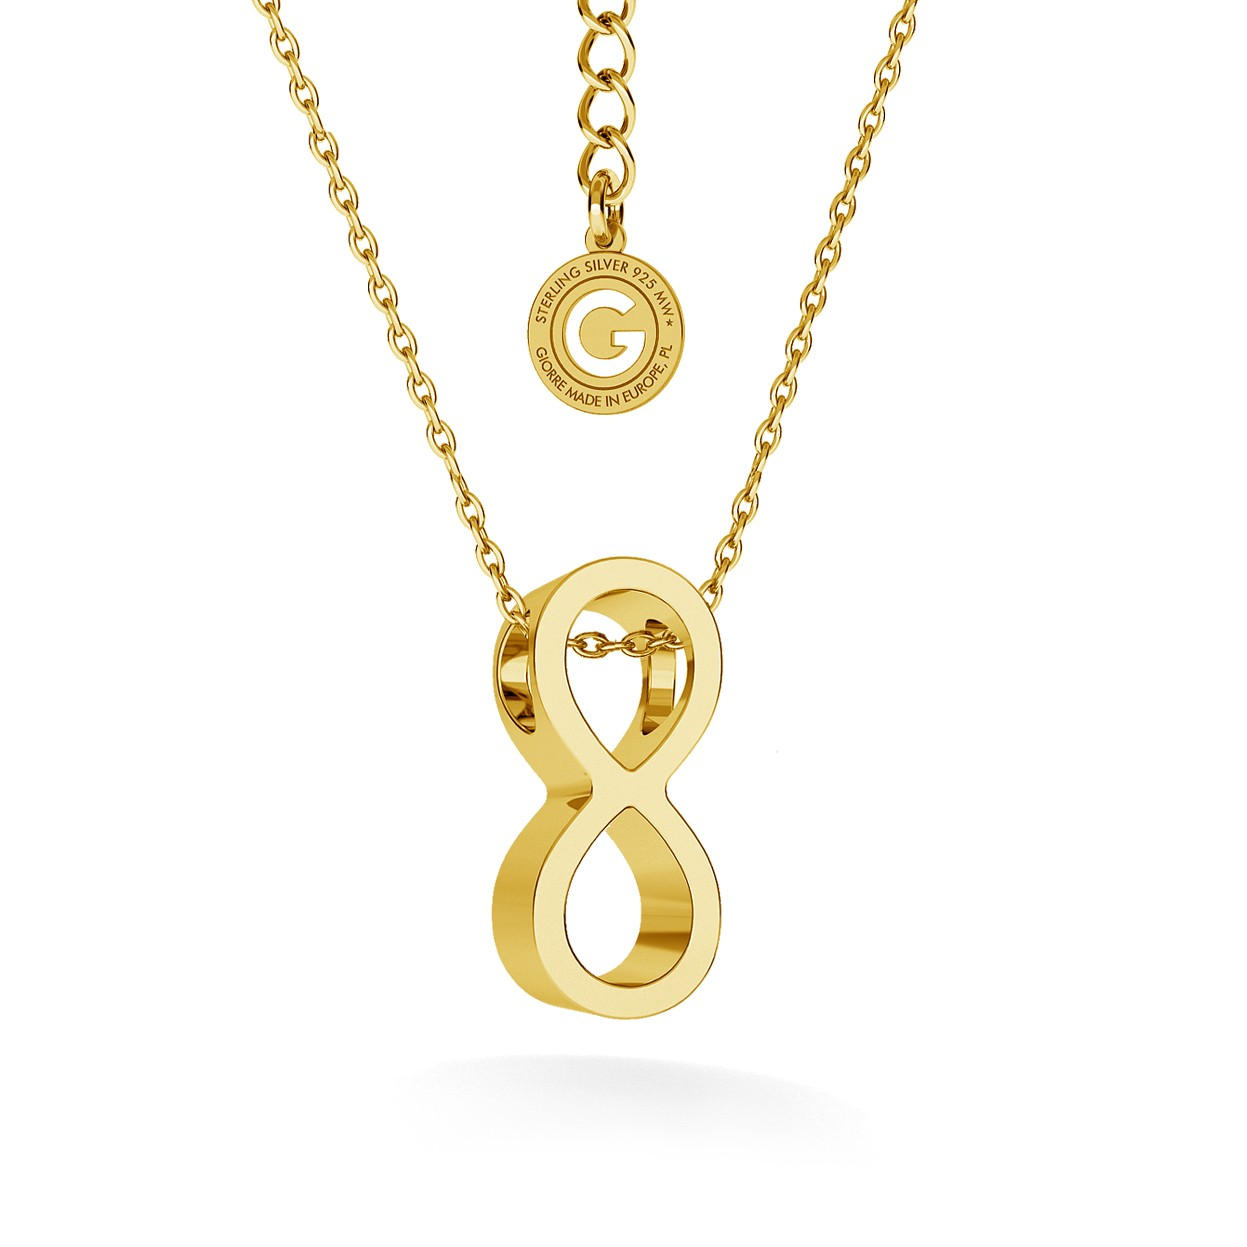 Infinity sign necklace